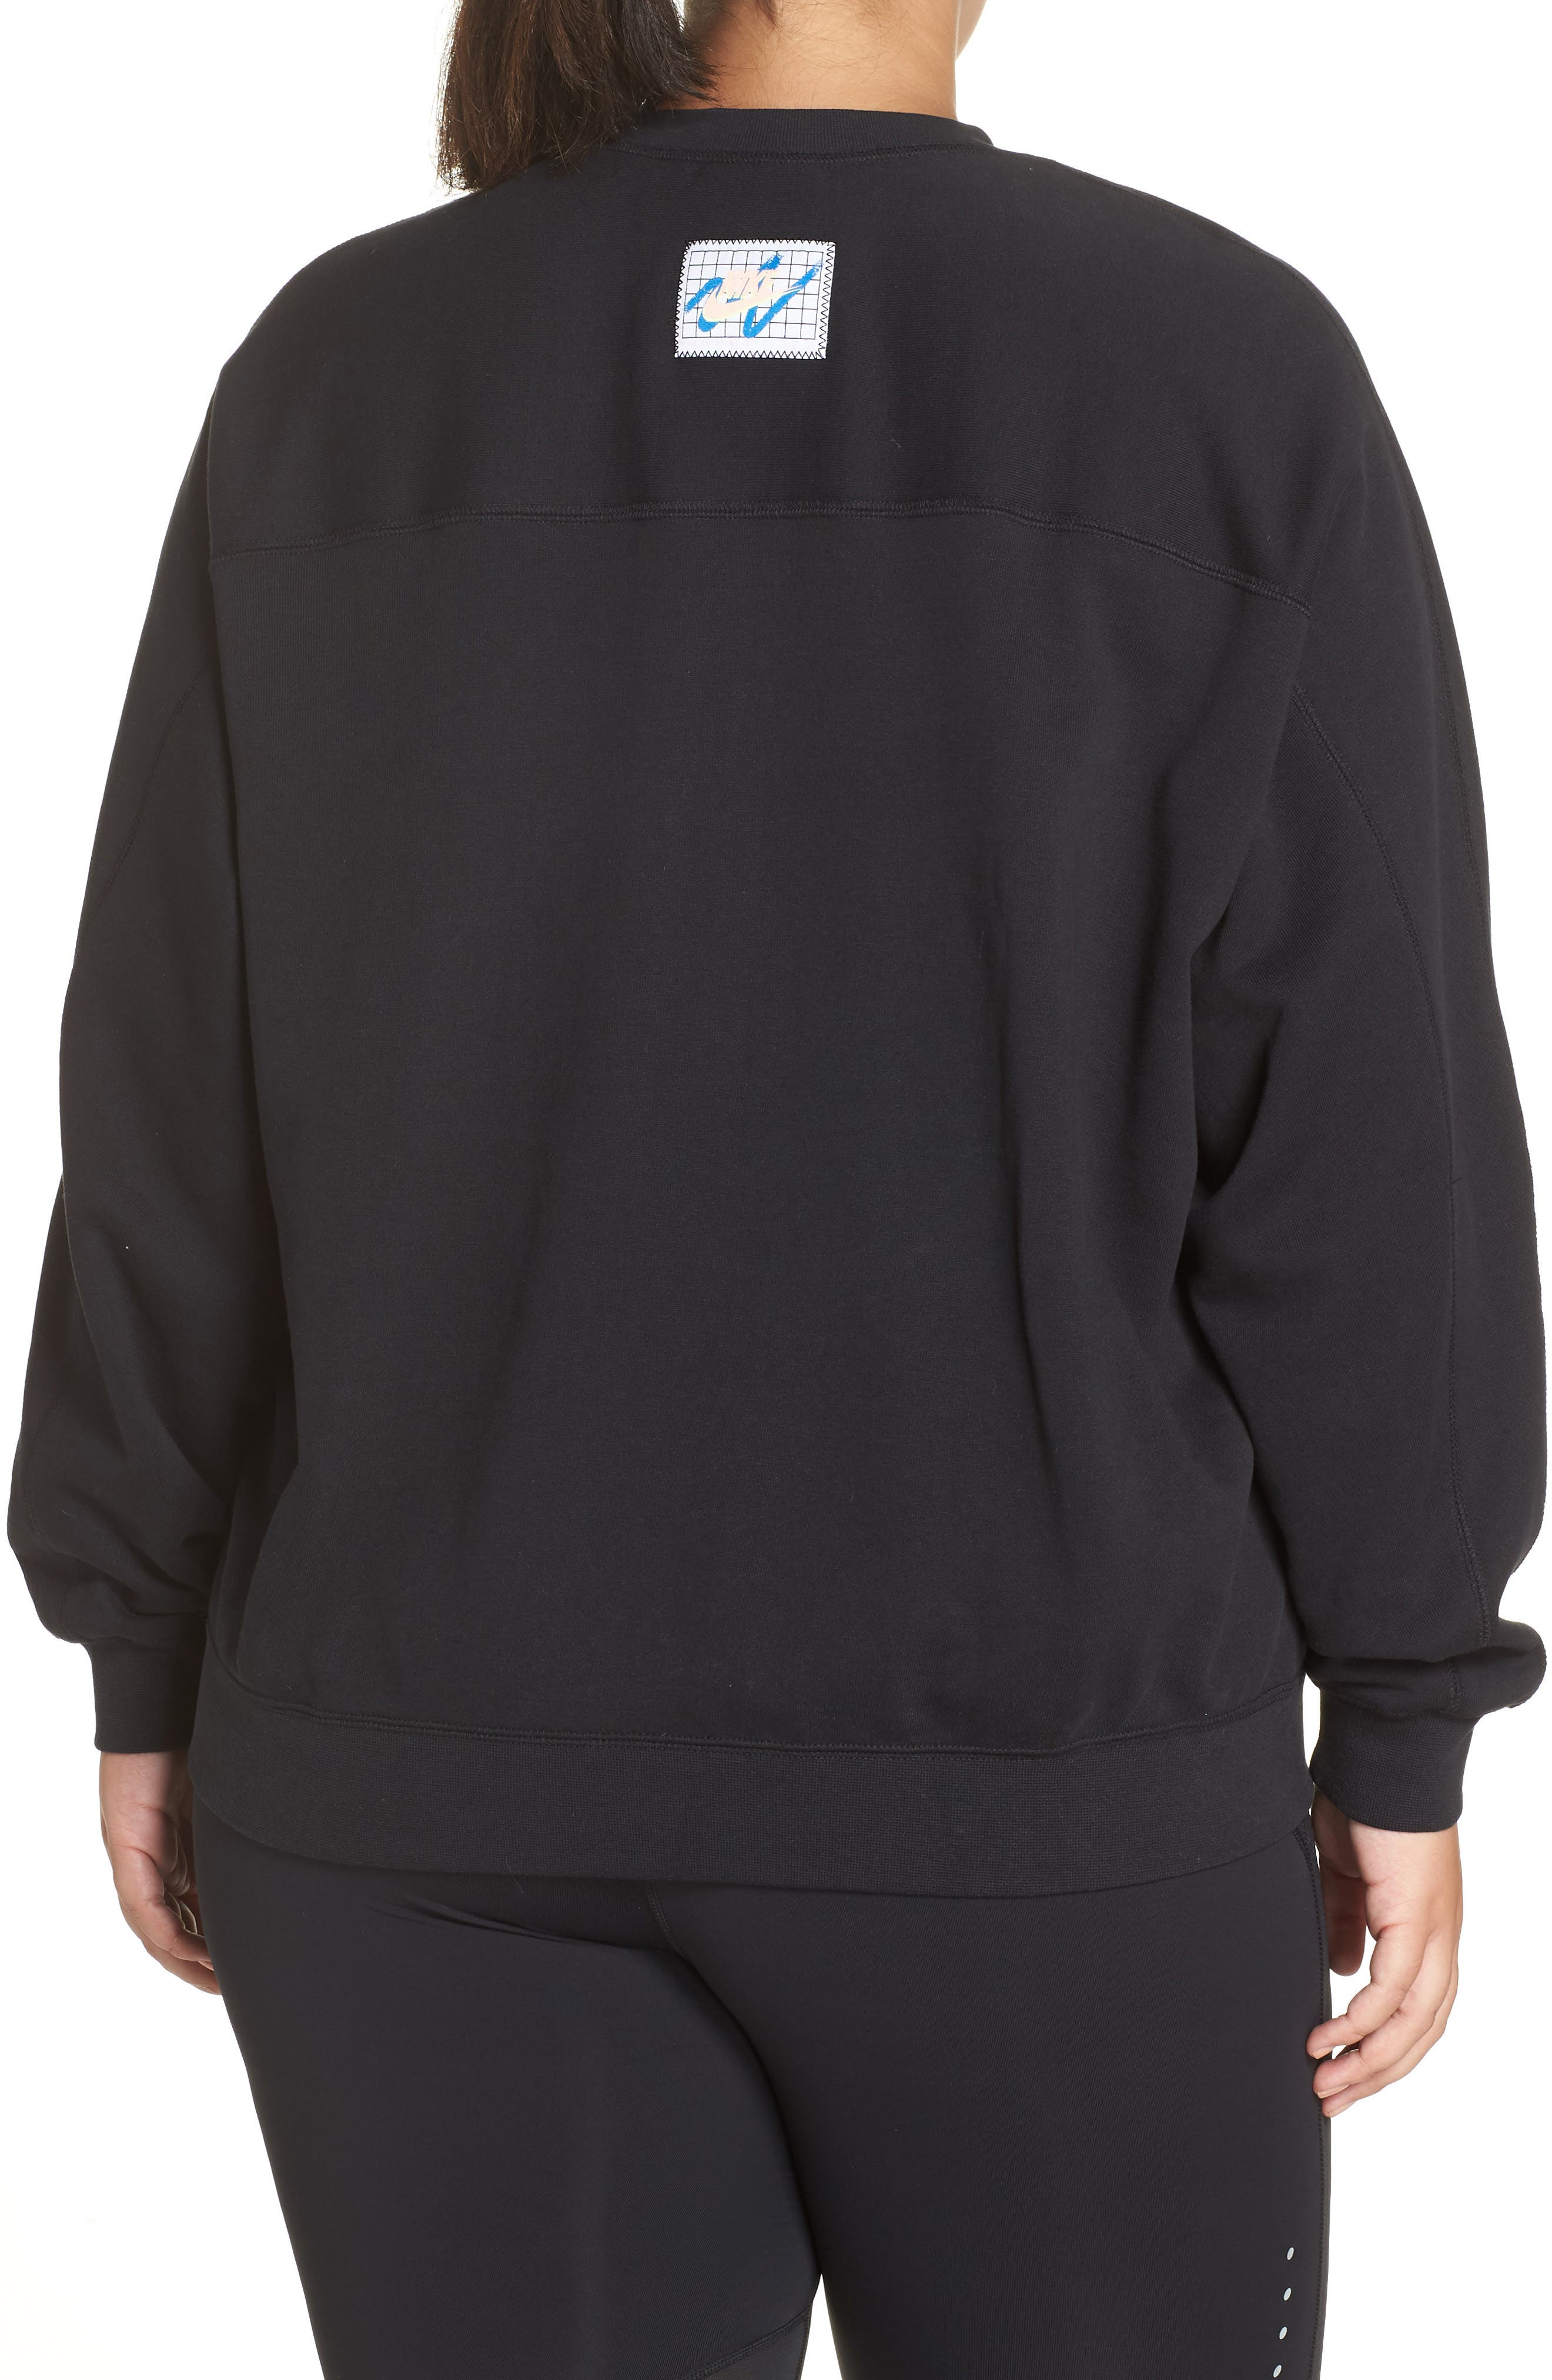 Sportswear Archive Sweatshirt,                             Alternate thumbnail 2, color,                             010